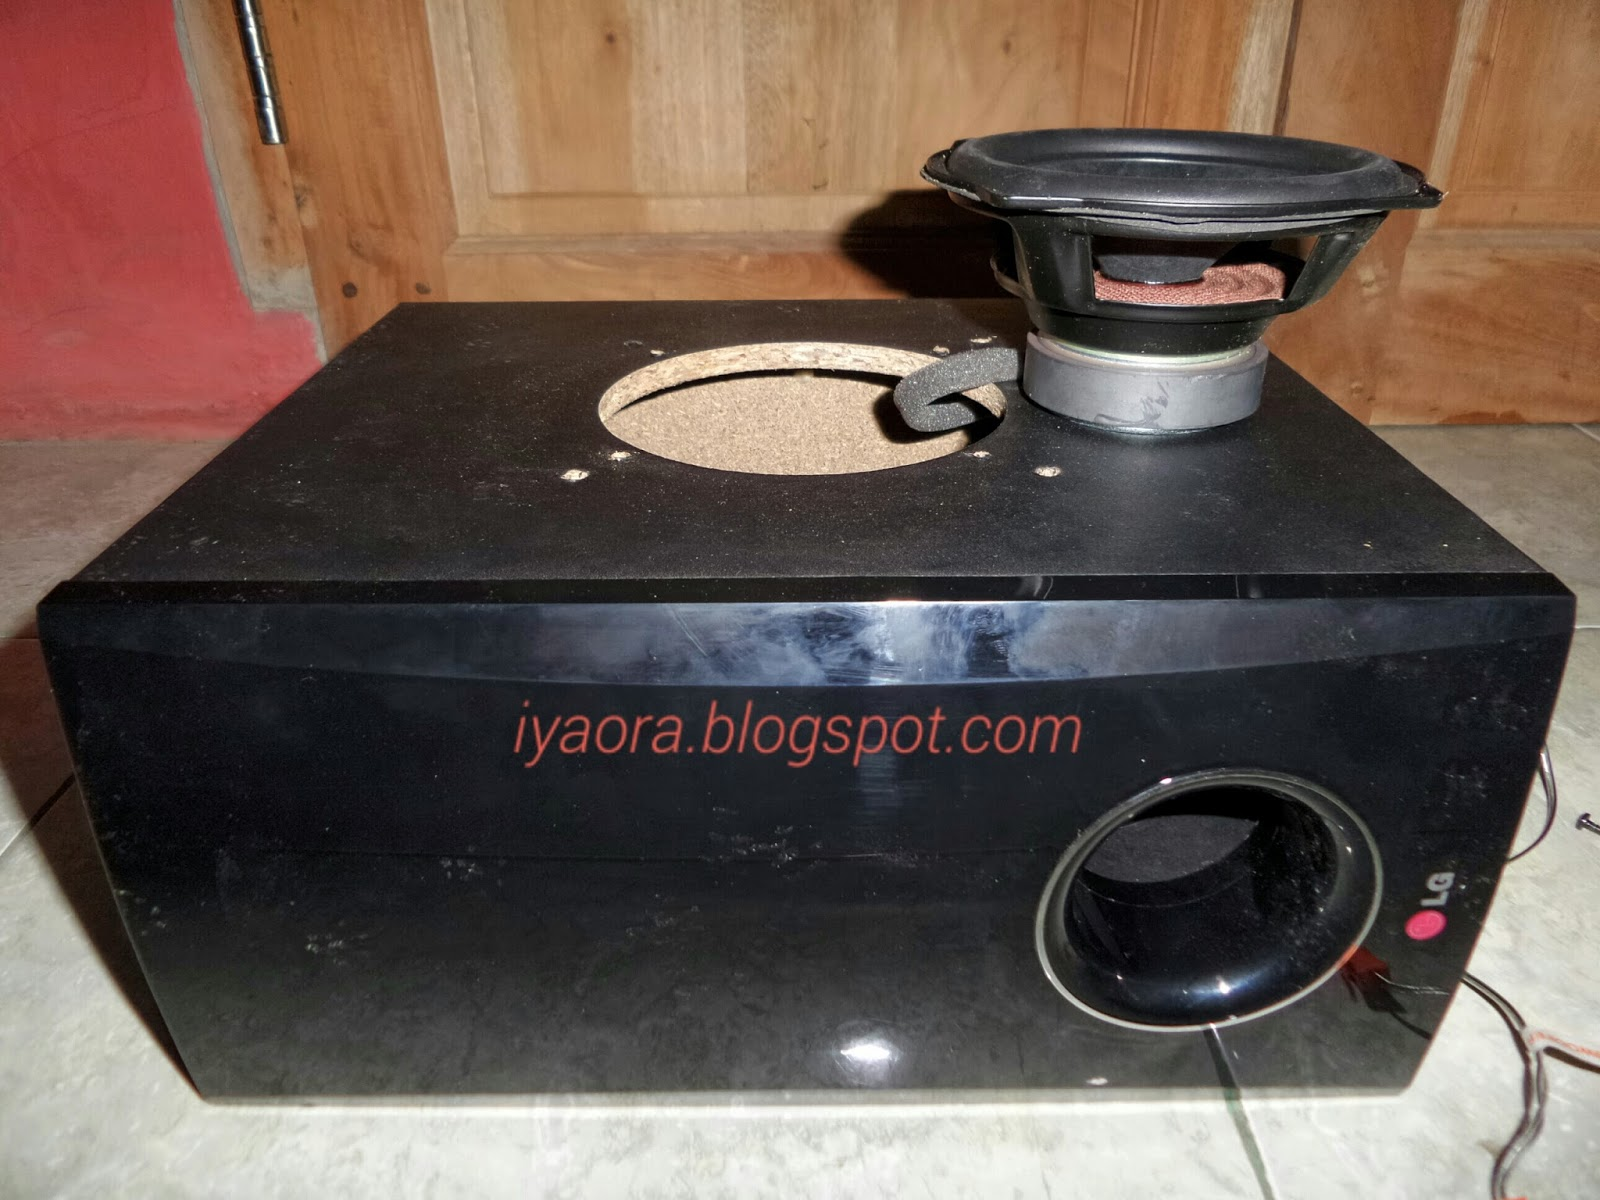 Pasang peredam suara di box subwoofer lg for Ukuran box salon 8 inch